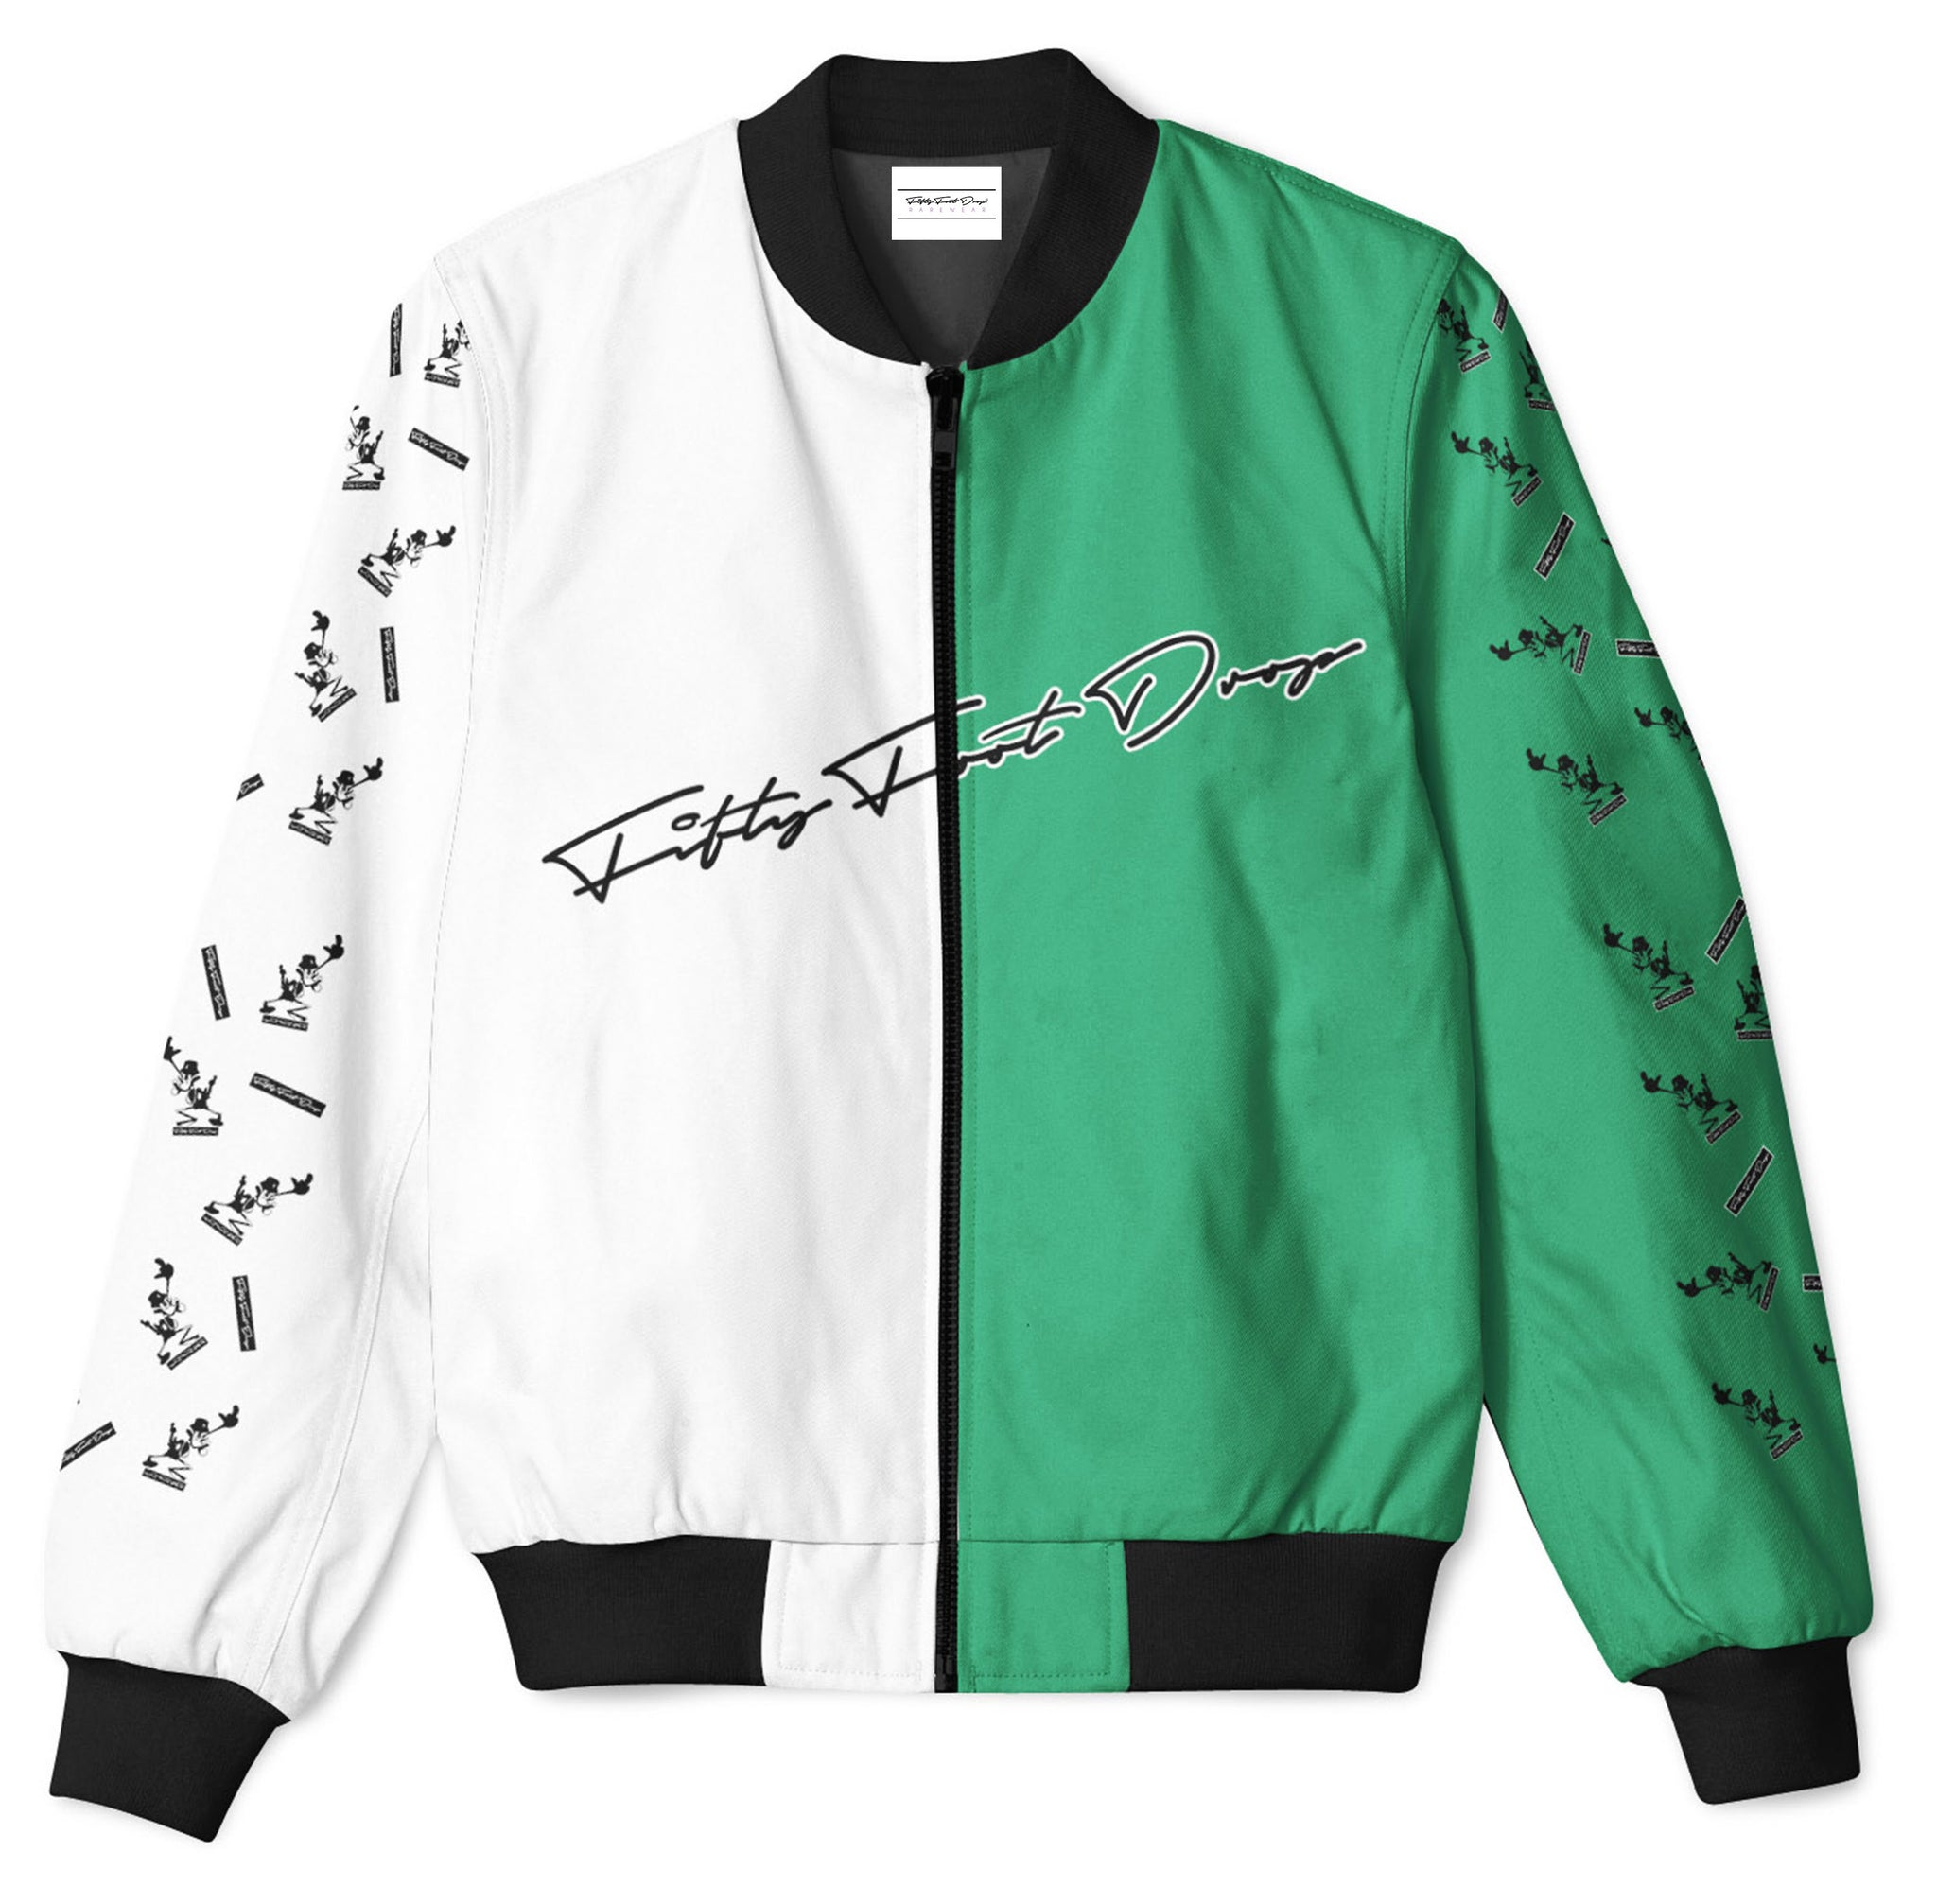 DUCK YOU - FIFTY FOOT DROP - BOMBER JACKET  Fifty Foot Drop  fresh-on-road.myshopify.com Fifty Foot Drop